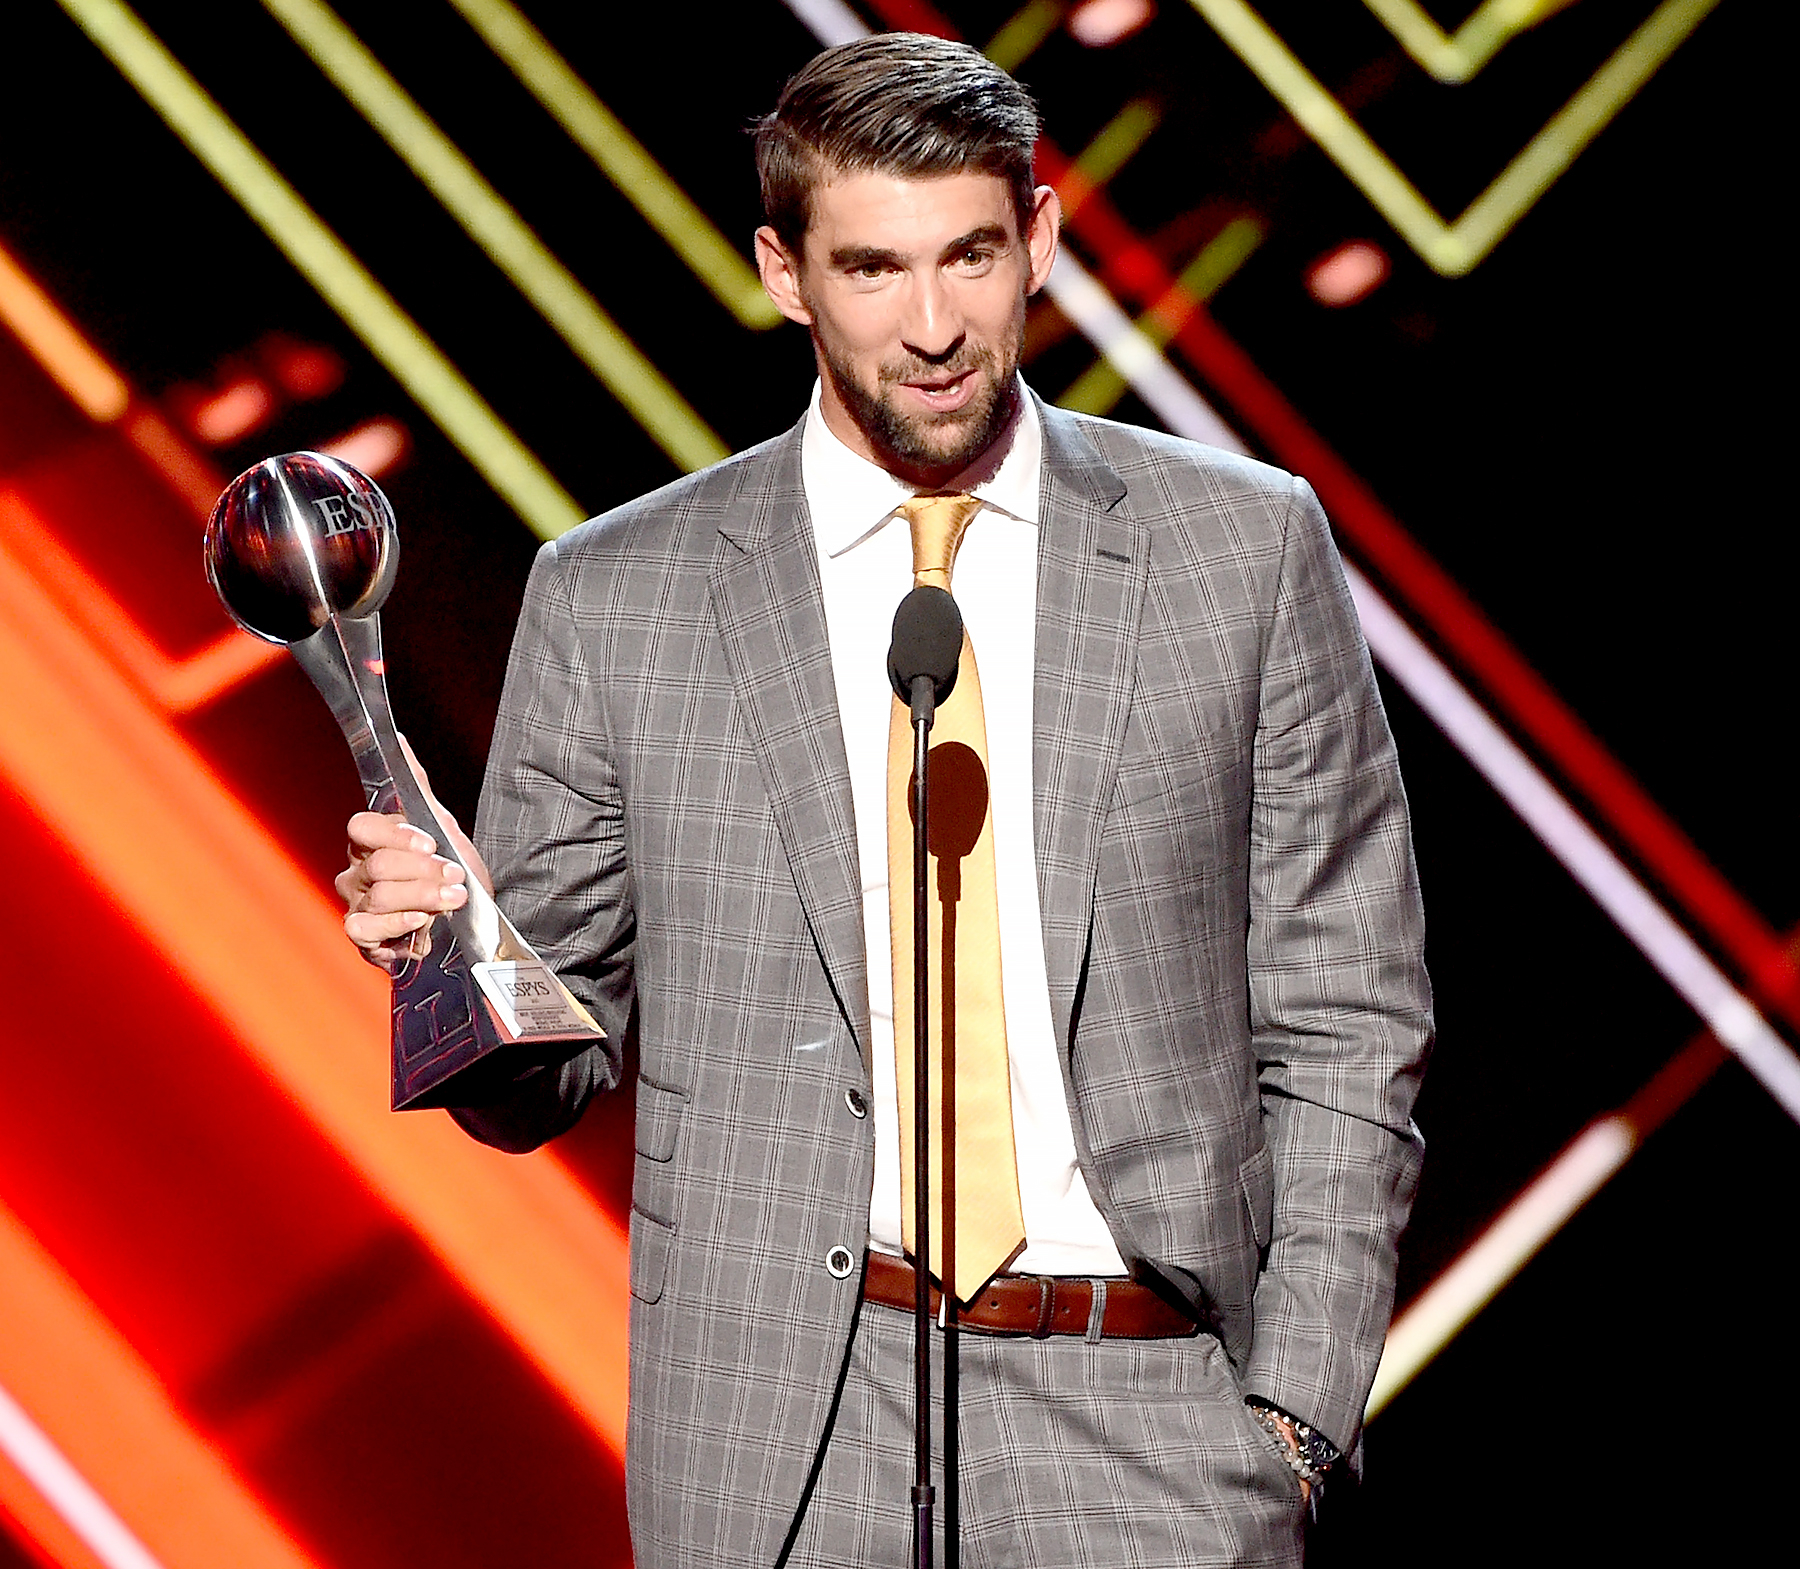 Michael Phelps accepts the Best Record-Breaking Performance award onstage at The 2017 ESPYS at Microsoft Theater on July 12, 2017 in Los Angeles, California.